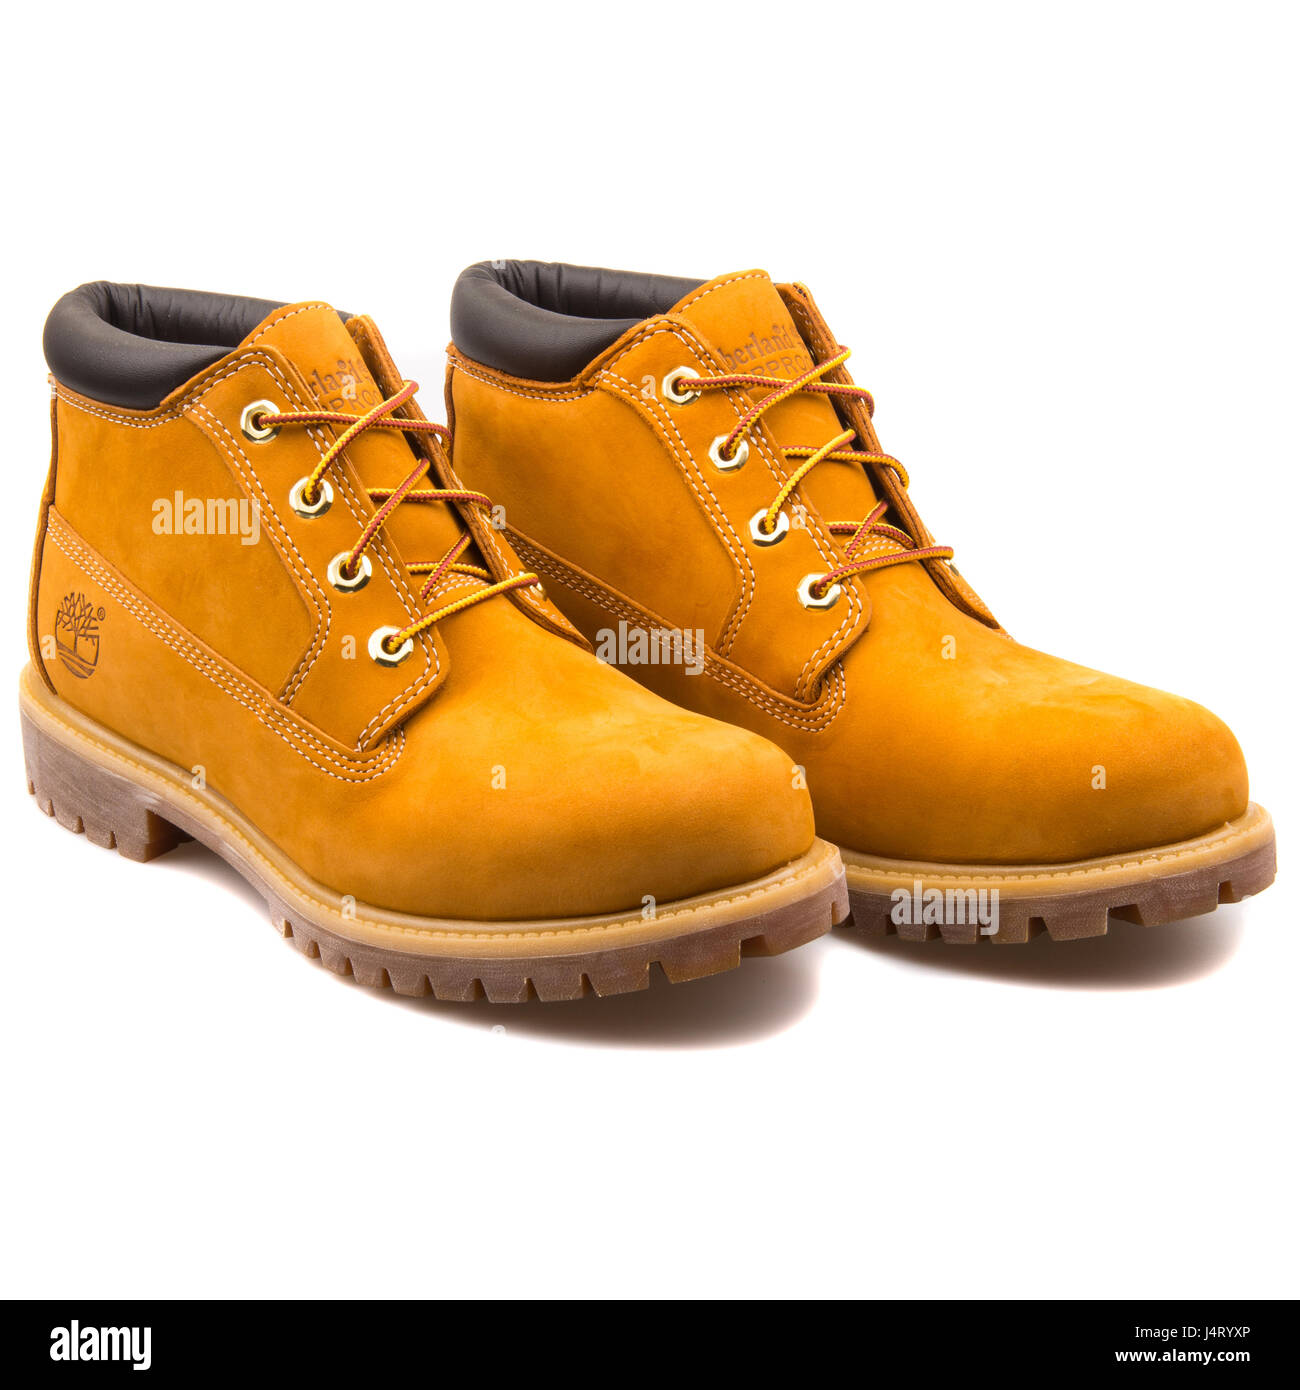 Timberland Men's Anti-fatigue AF Waterproof Heritage Chukka Boots Wheat - 23061 - Stock Image